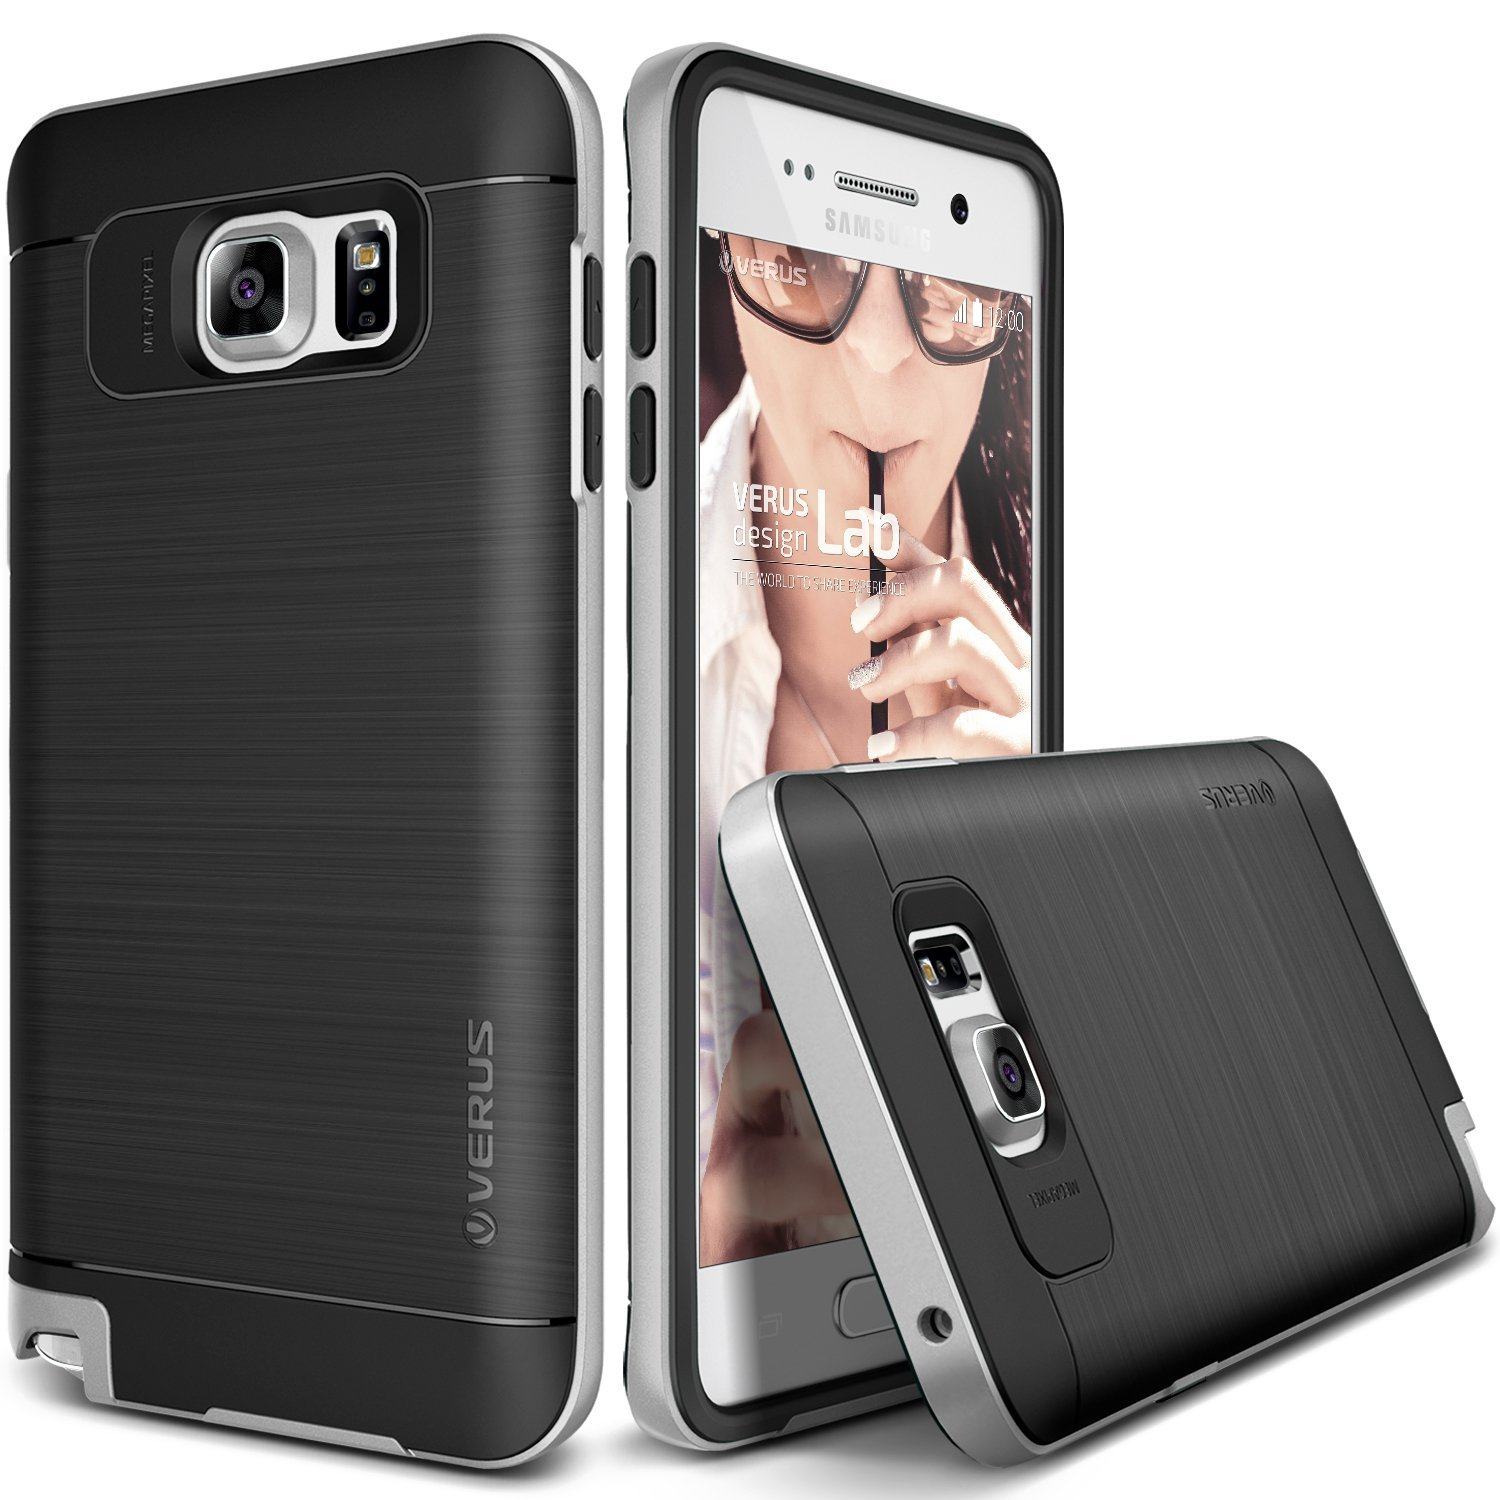 Top 10 Best Samsung Galaxy Note 5 Cases and Covers in 2018 Reviews